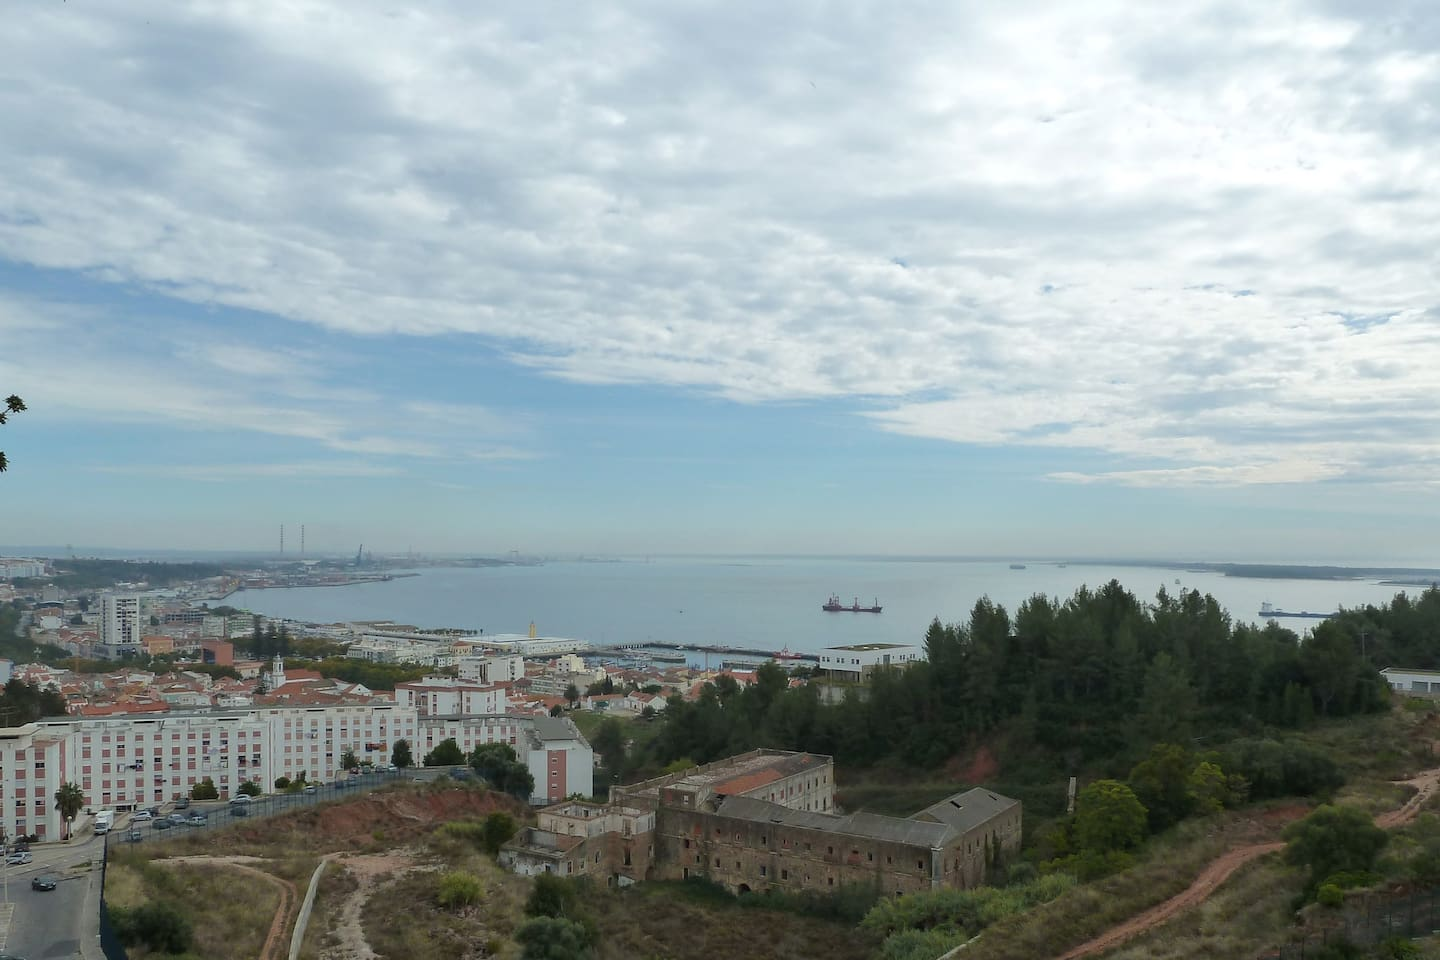 The view from my Balcony over the river Sado Estuary.